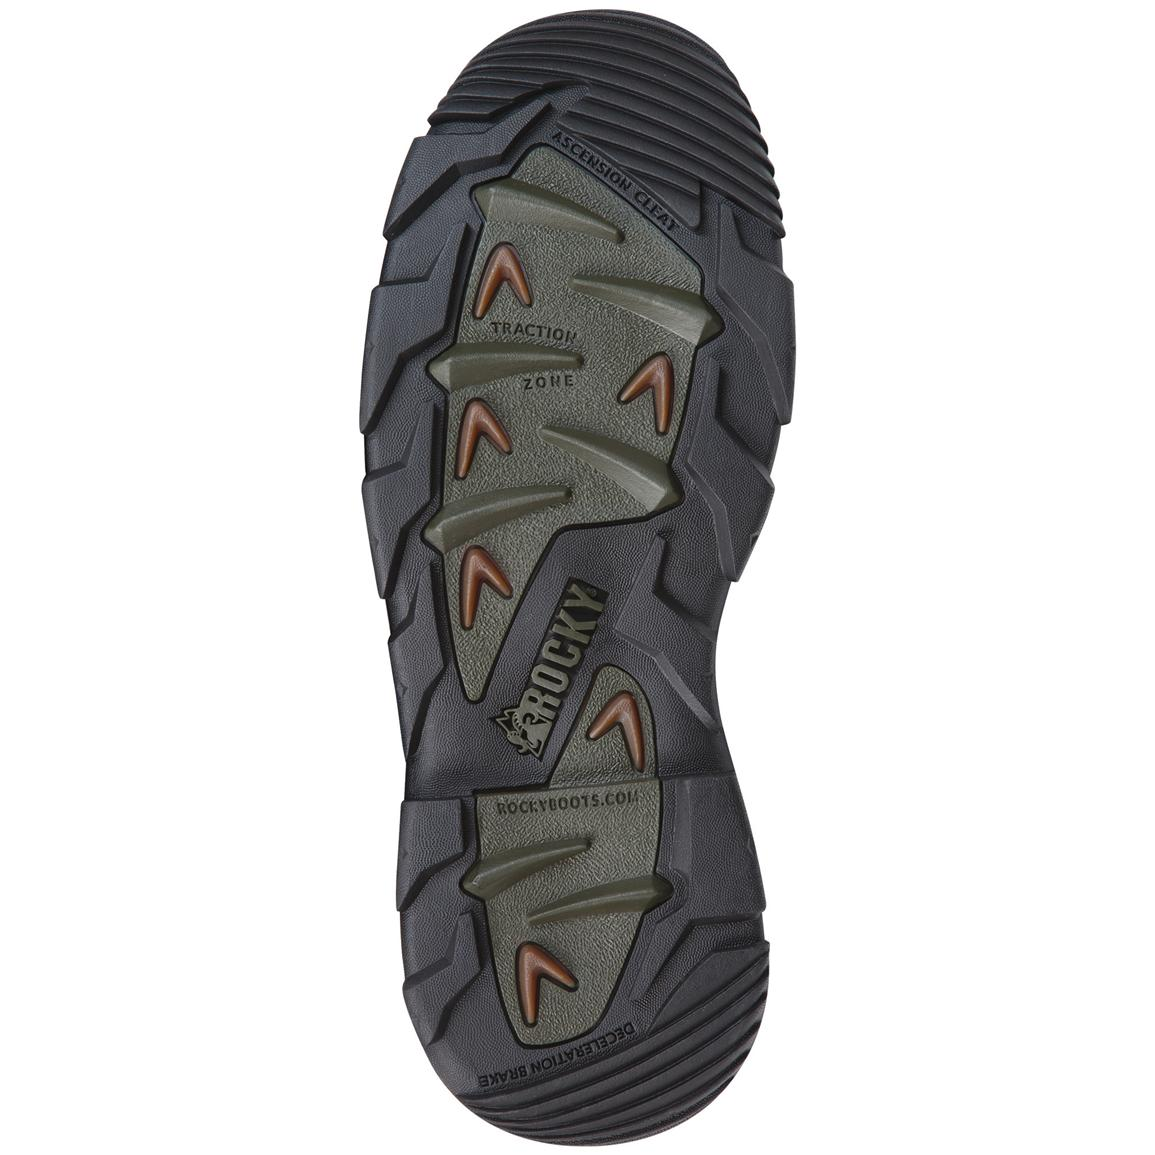 Outsole designed for ice and snow traction